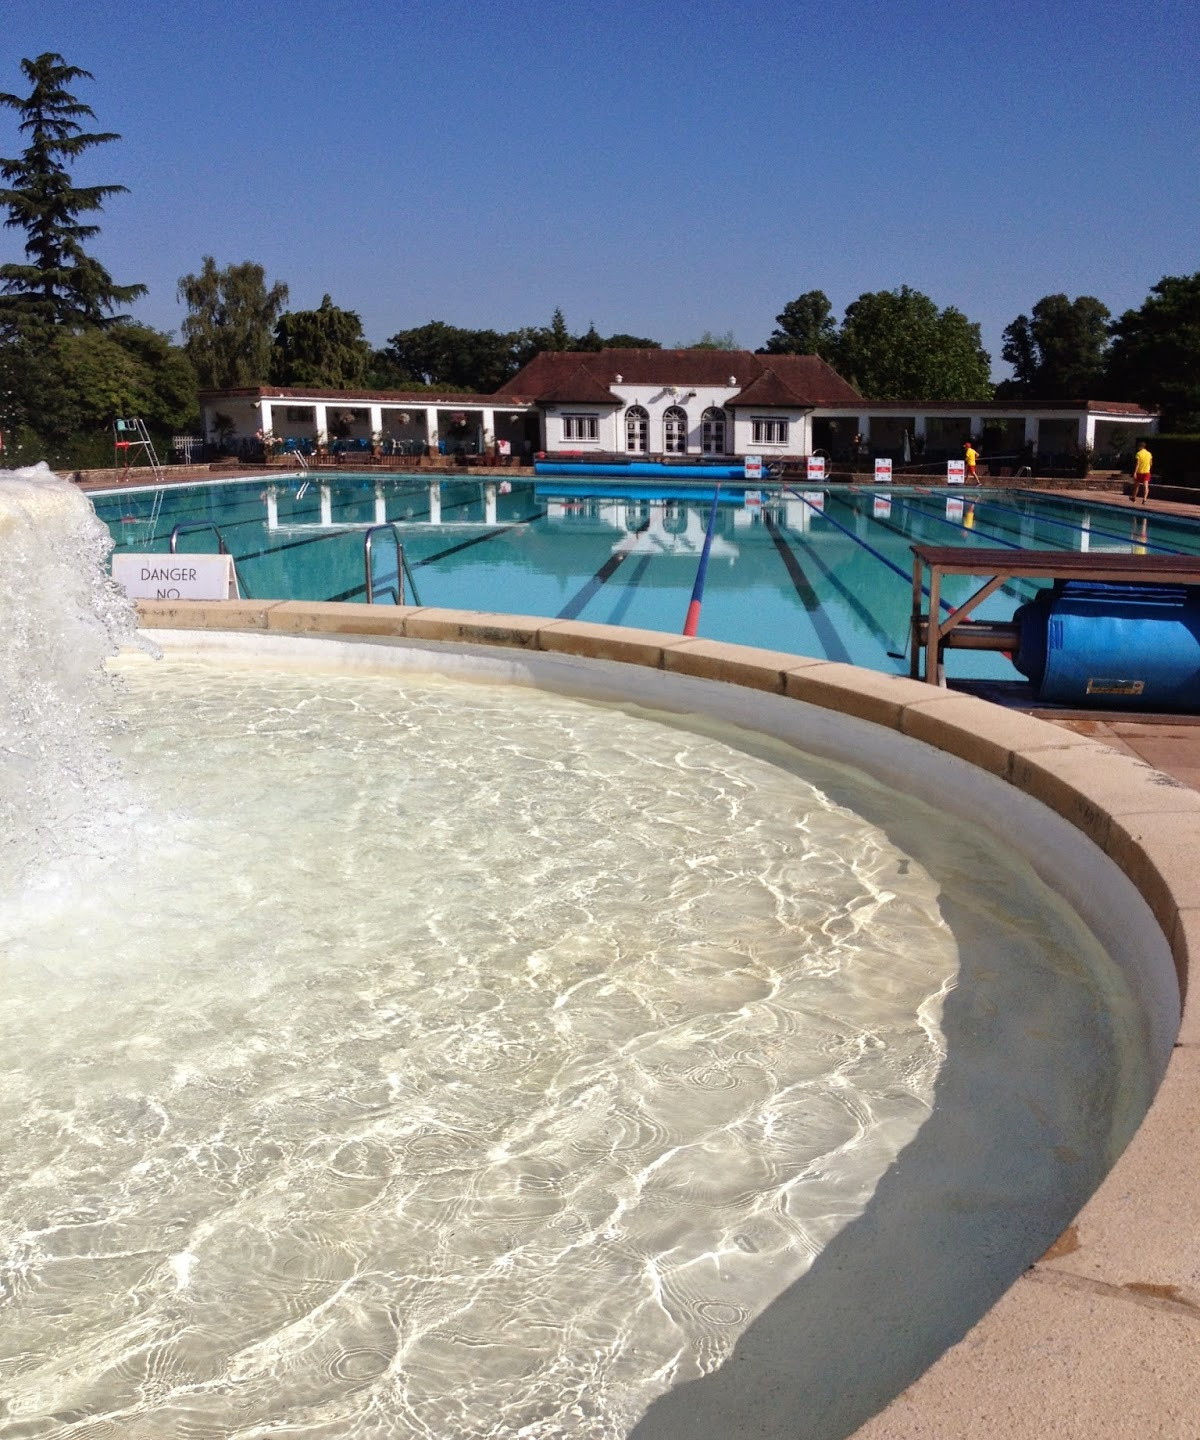 Cheltenham lido at its best.... training was going well in the lead up